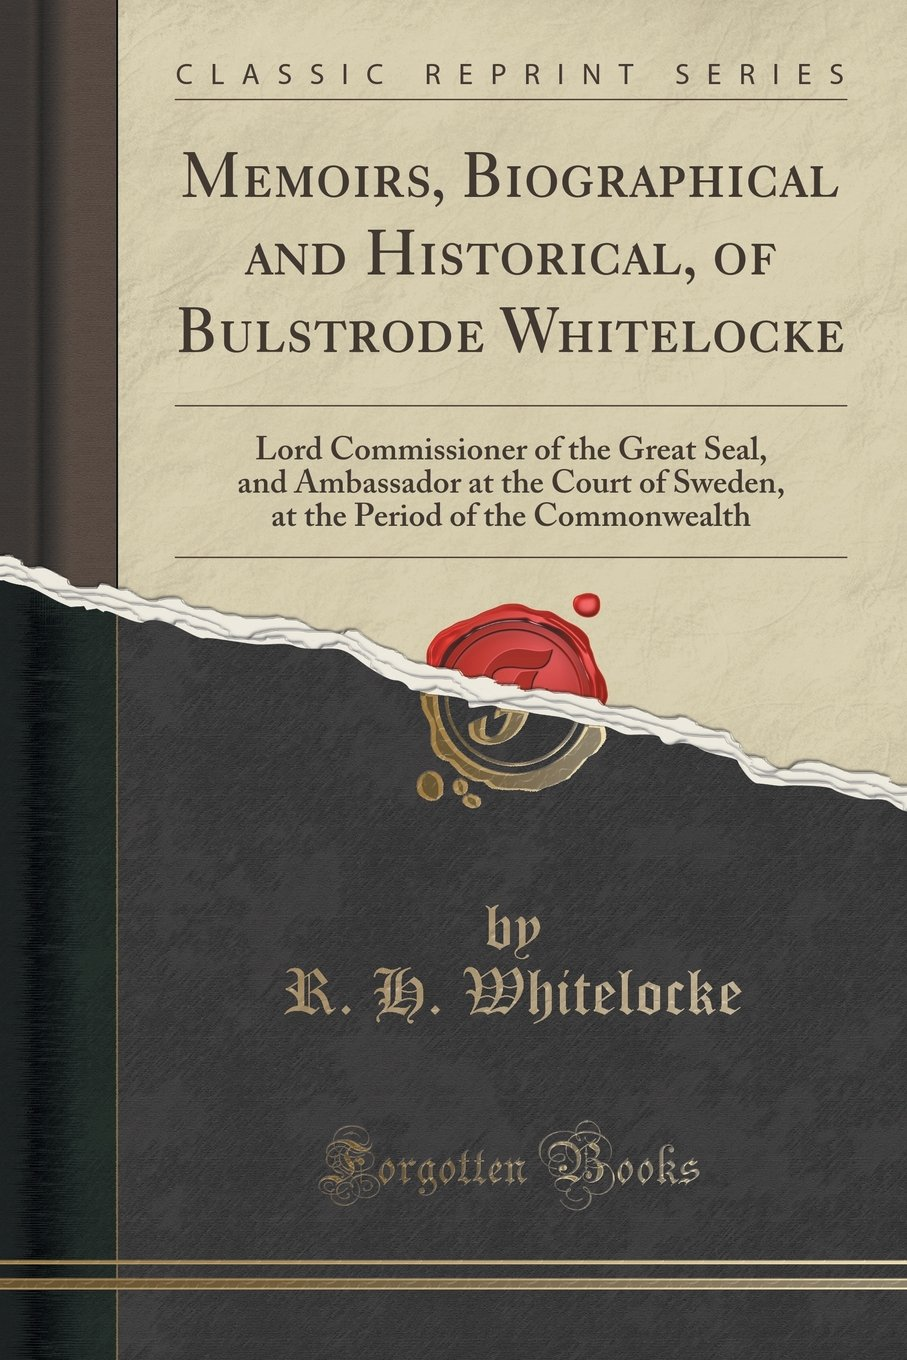 Memoirs, Biographical and Historical, of Bulstrode Whitelocke: Lord Commissioner of the Great Seal, and Ambassador at the Court of Sweden, at the Period of the Commonwealth (Classic Reprint)